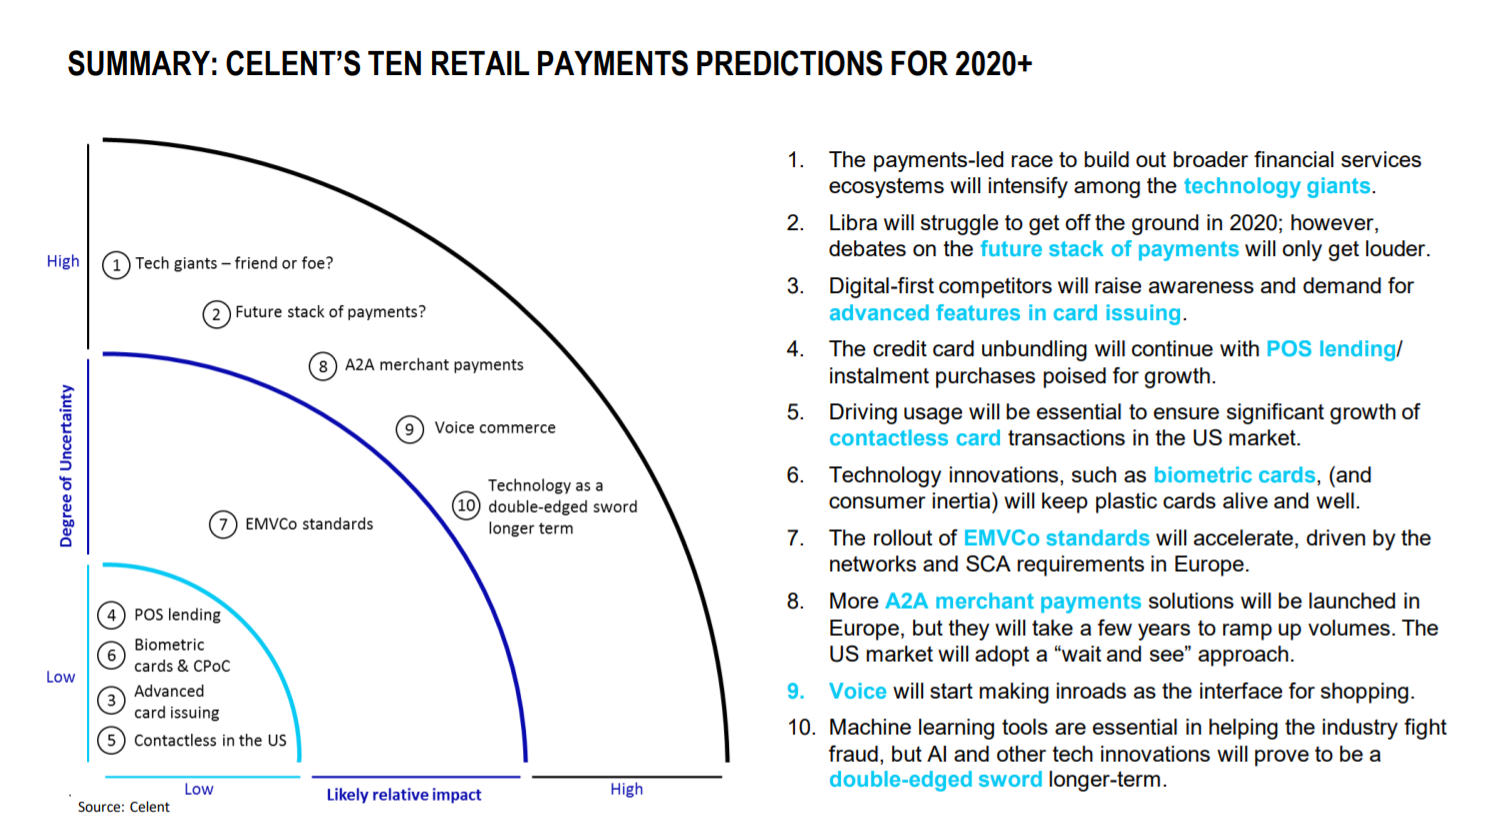 Top 10 Retail Payment Predictions for 2020